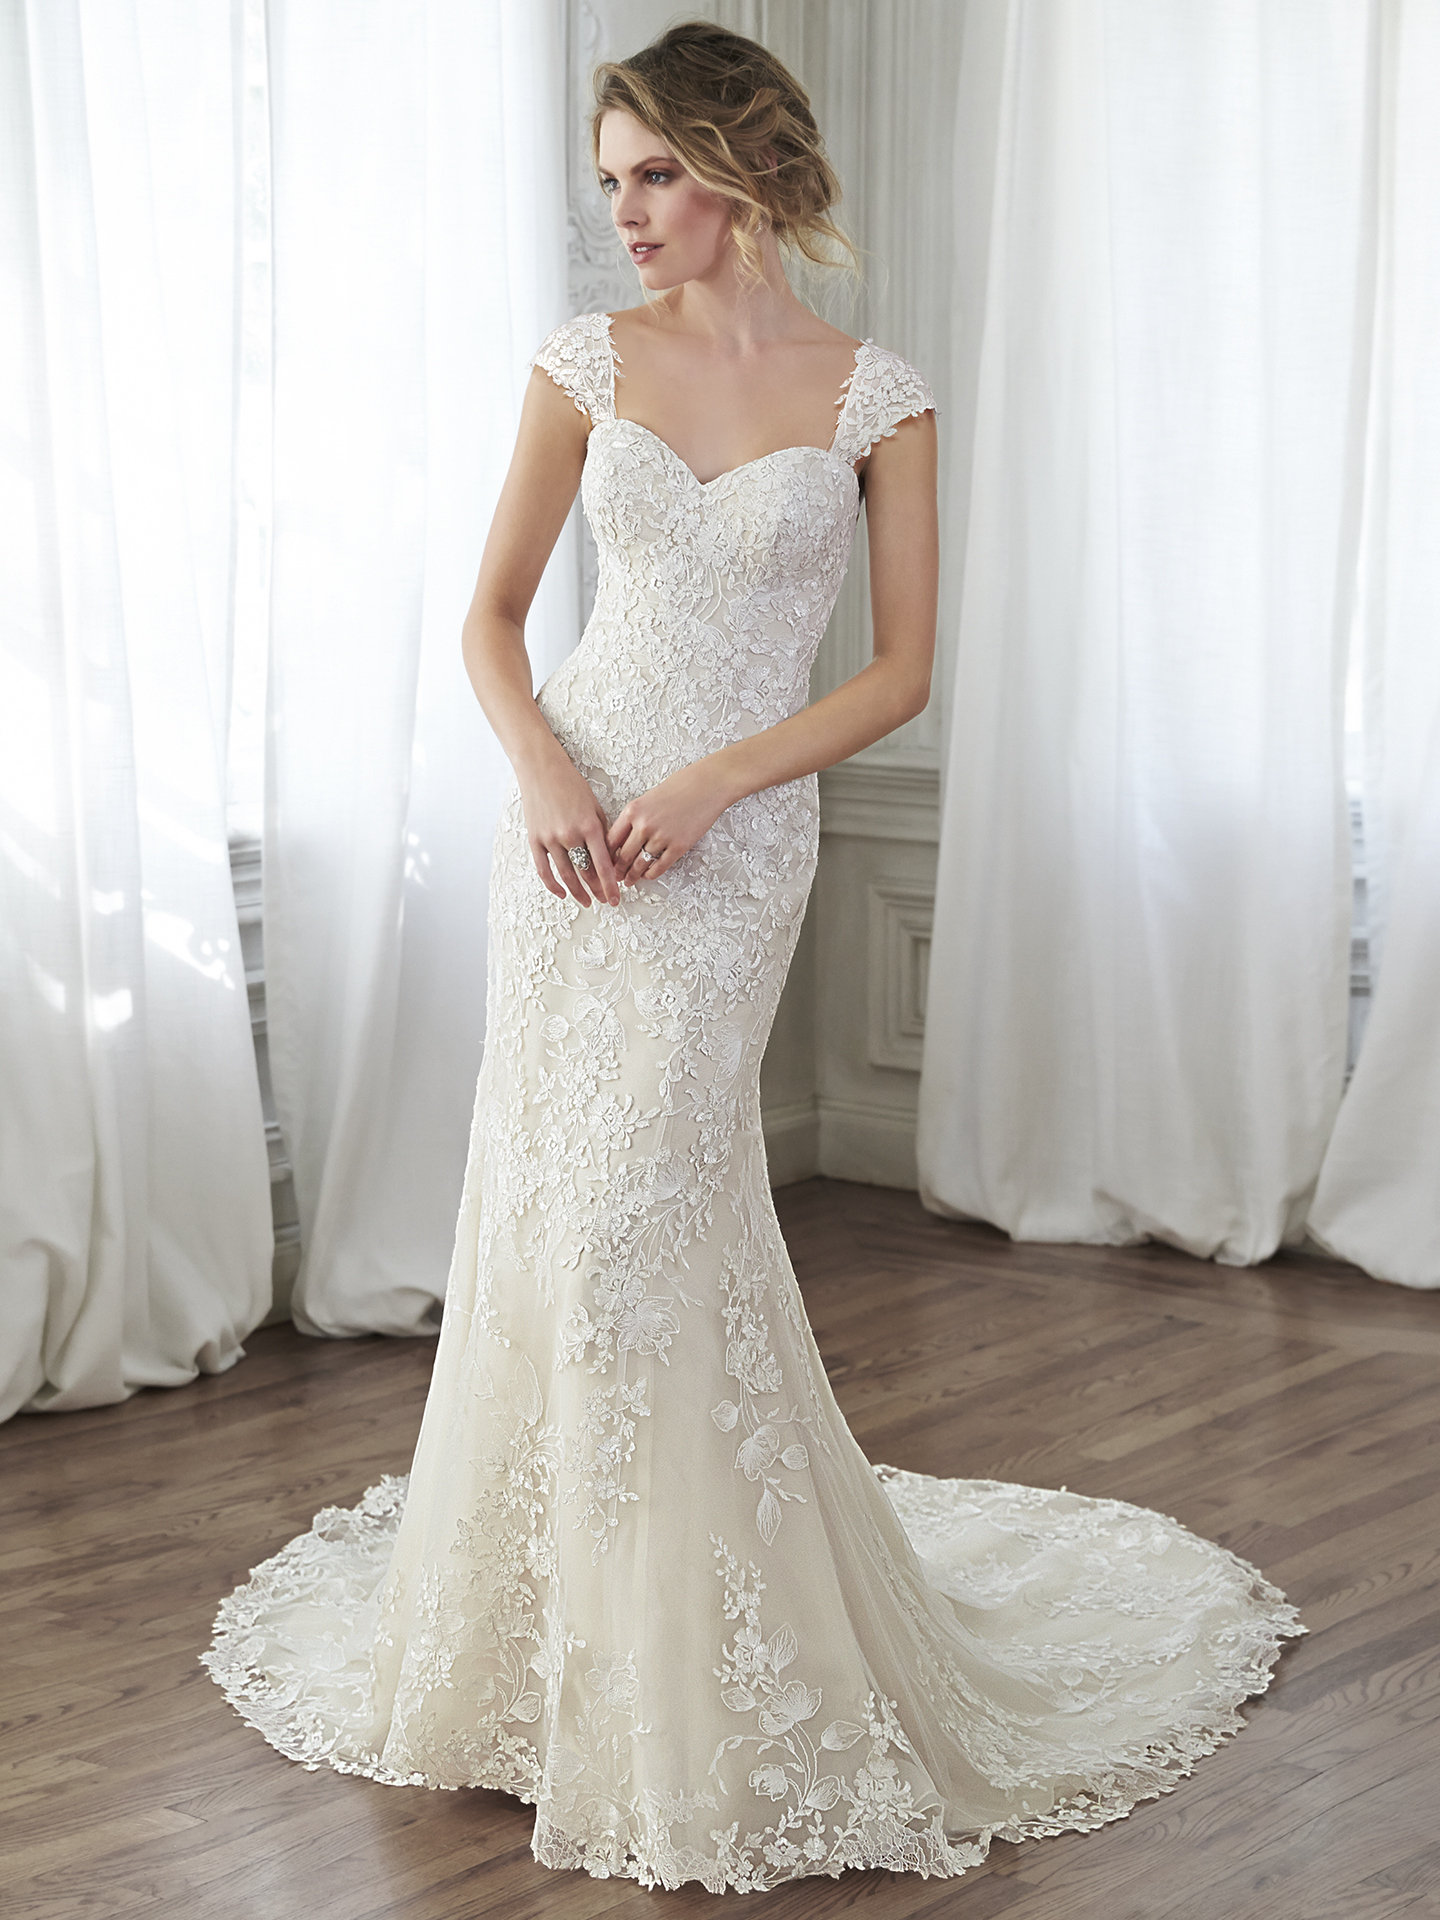 16 Best Wedding Gowns of 2016 - Arlyn by Maggie Sottero